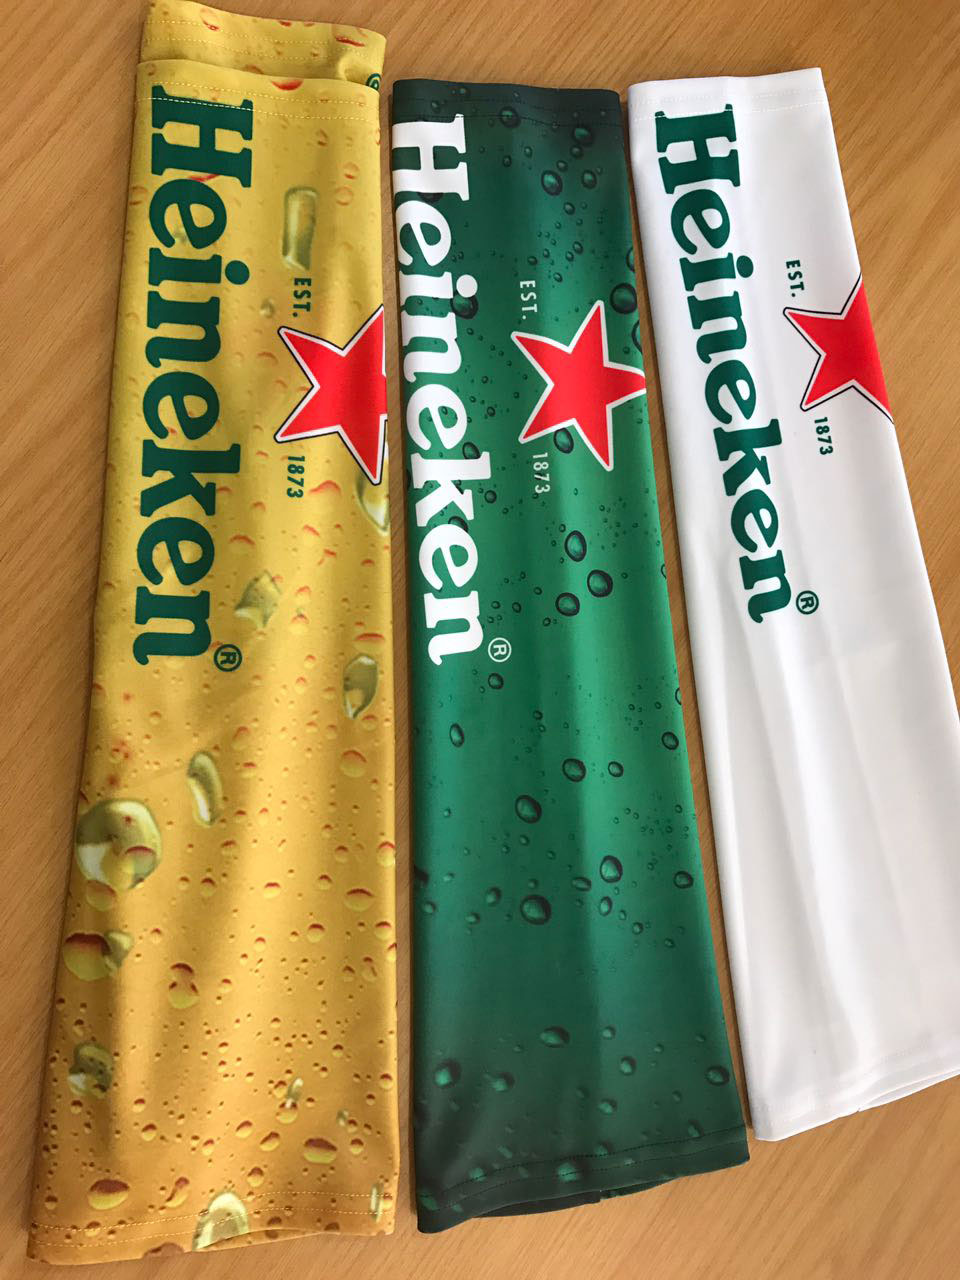 Heineken Arm sleeves